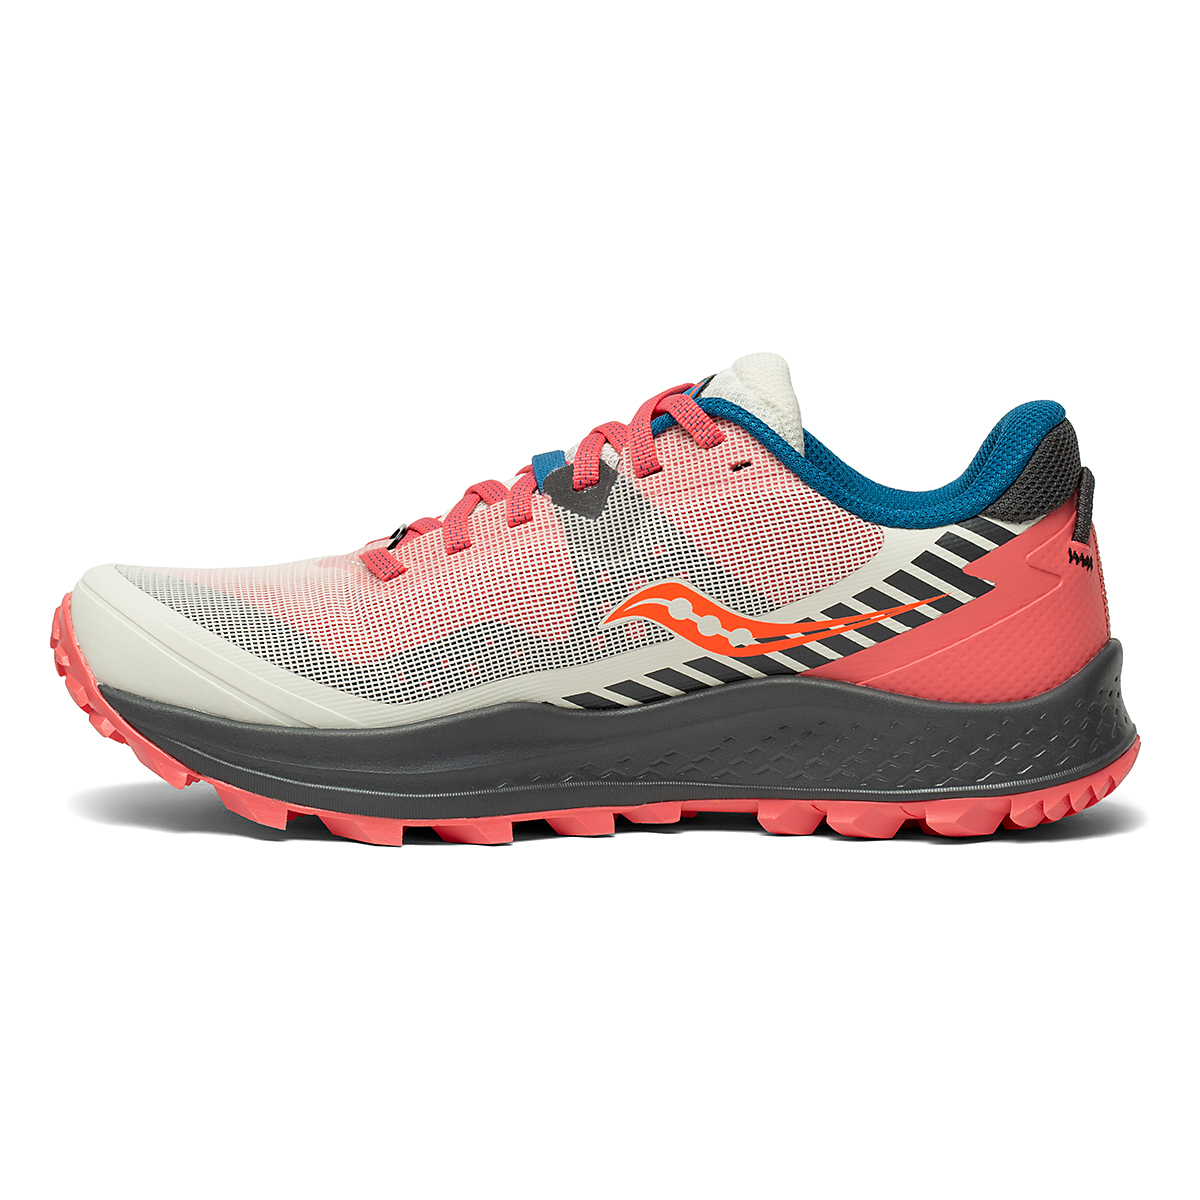 Women's Saucony Peregrine 11 Trail Running Shoe, , large, image 2